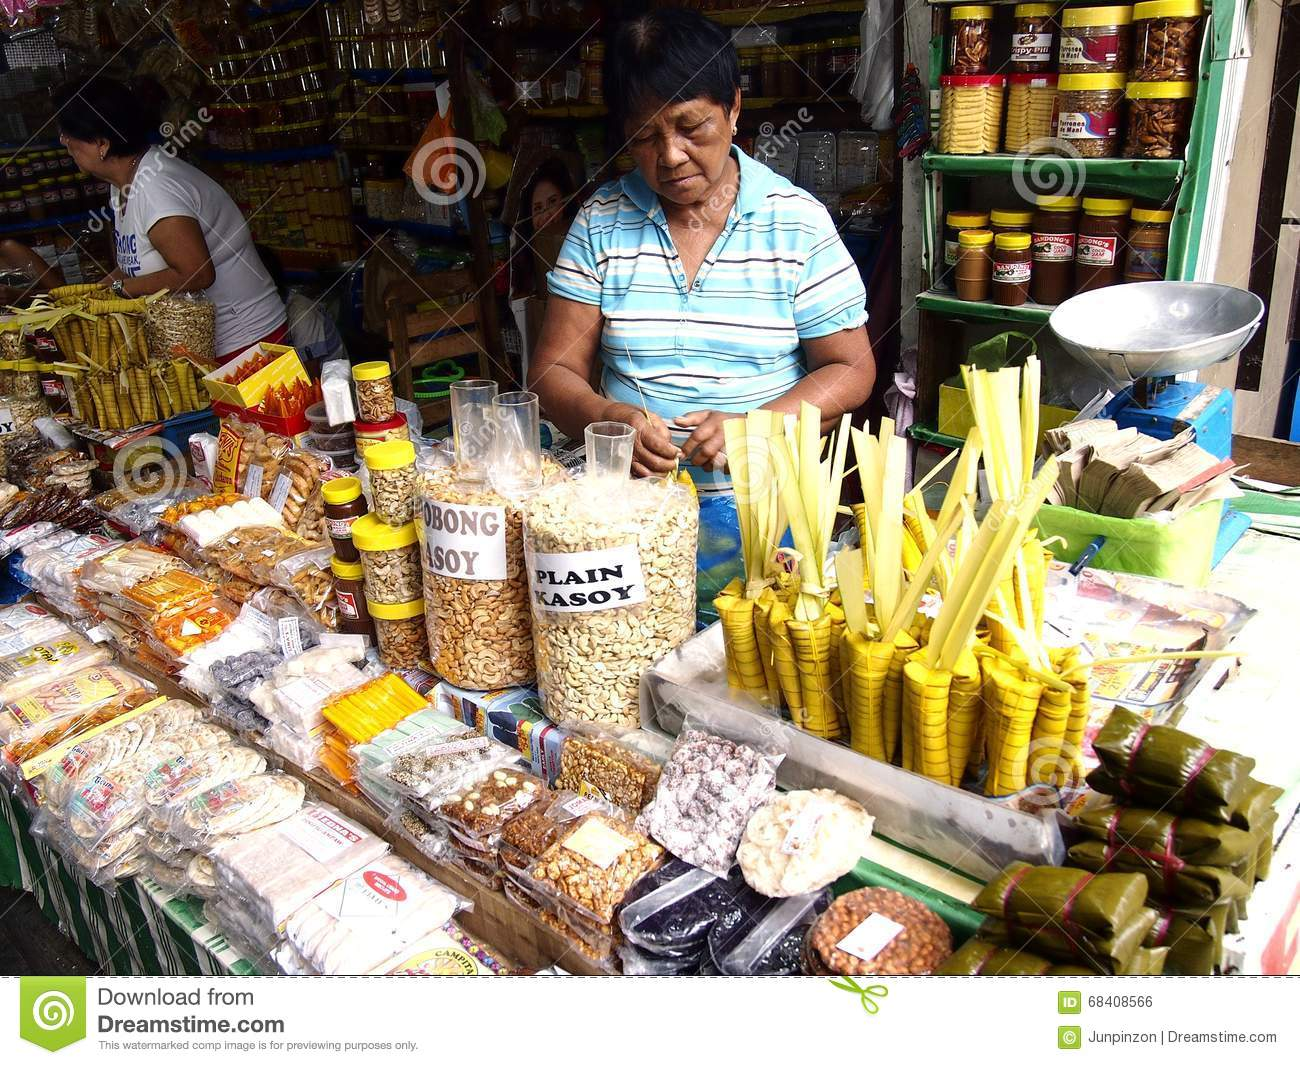 local literature philippine native delicacy Philippine breads and  pananderia is a local bakeshop or bakery found in  hopia is a filipino bread considered as a delicacy and often given to families and.